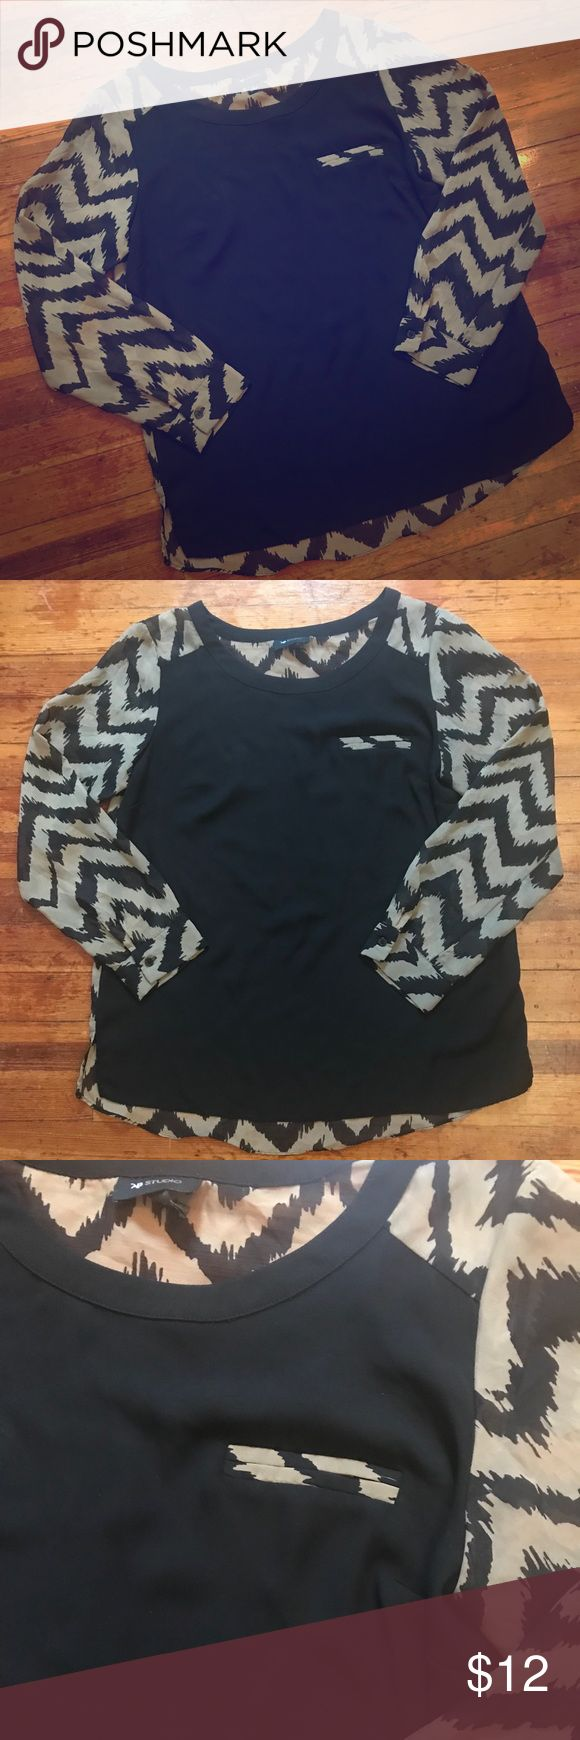 Black Tan Chevron Blouse Black Brown/Tan Chevron Blouse. Gently used but in mint condition. Sheer blouse. Smoke free home. AB Studio Tops Blouses